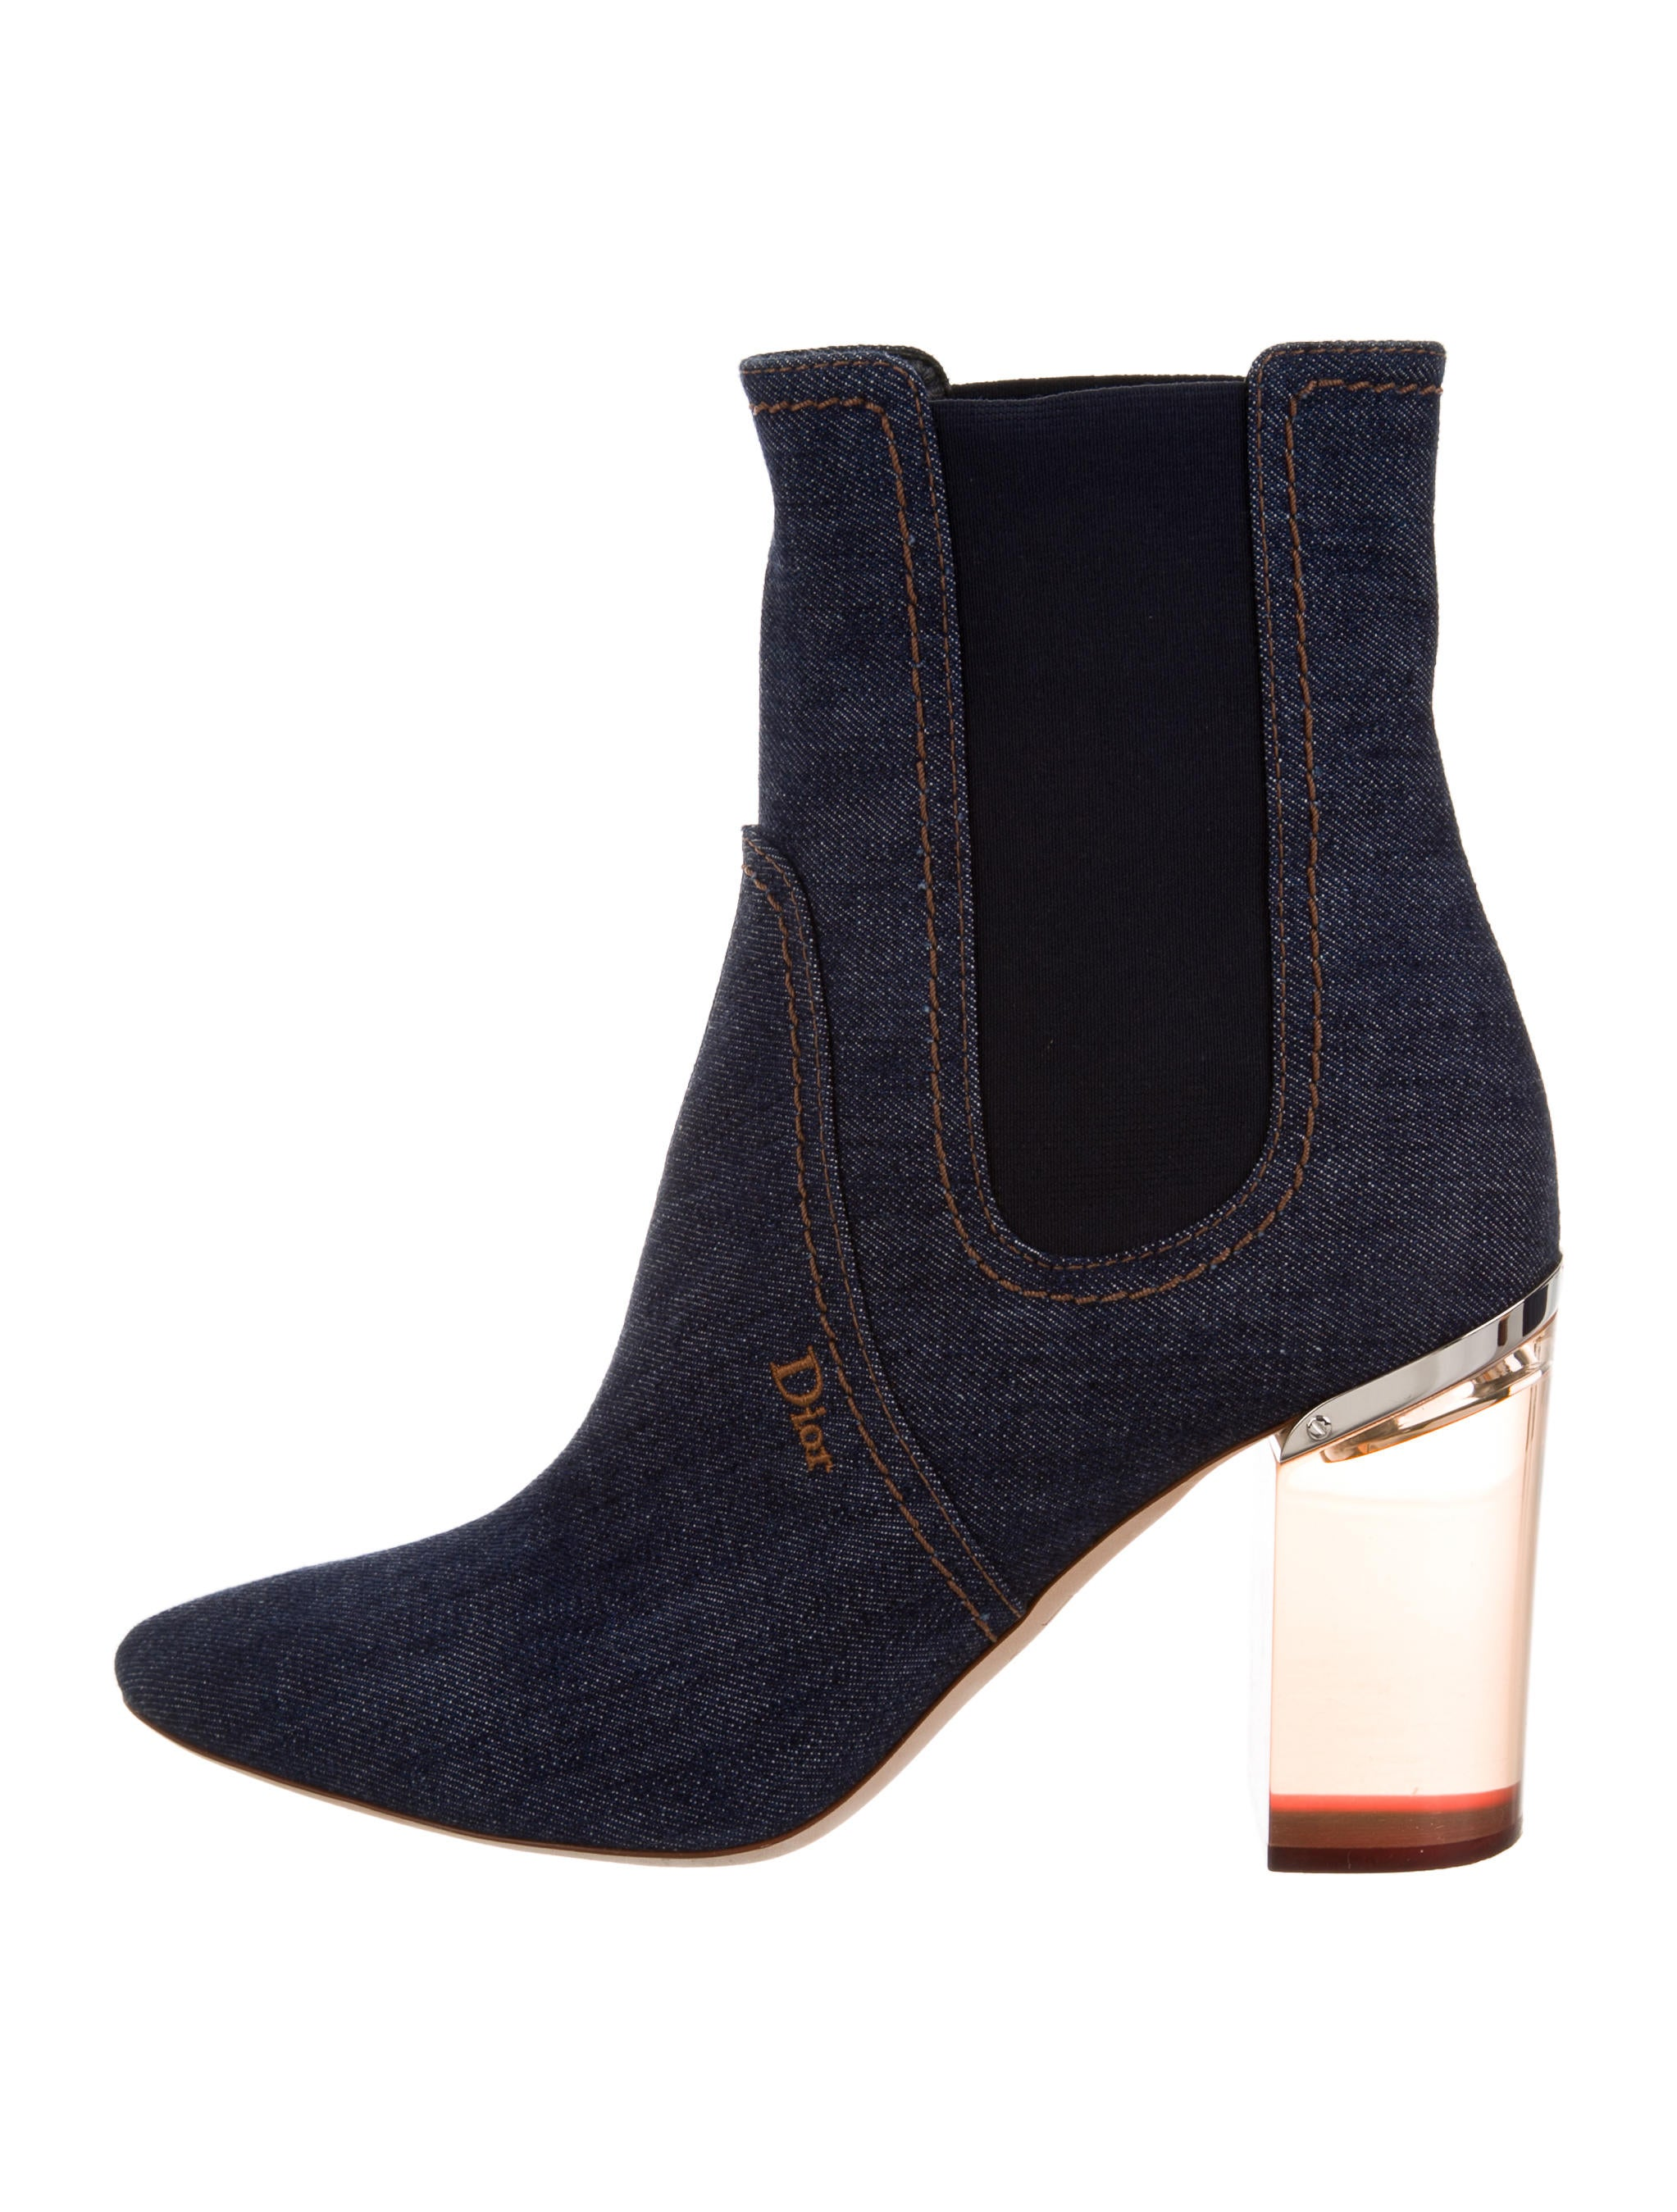 New The BIGGEST Mistake Women Make When Wearing Ankle Boots - The Heartu0026#39;s Delight